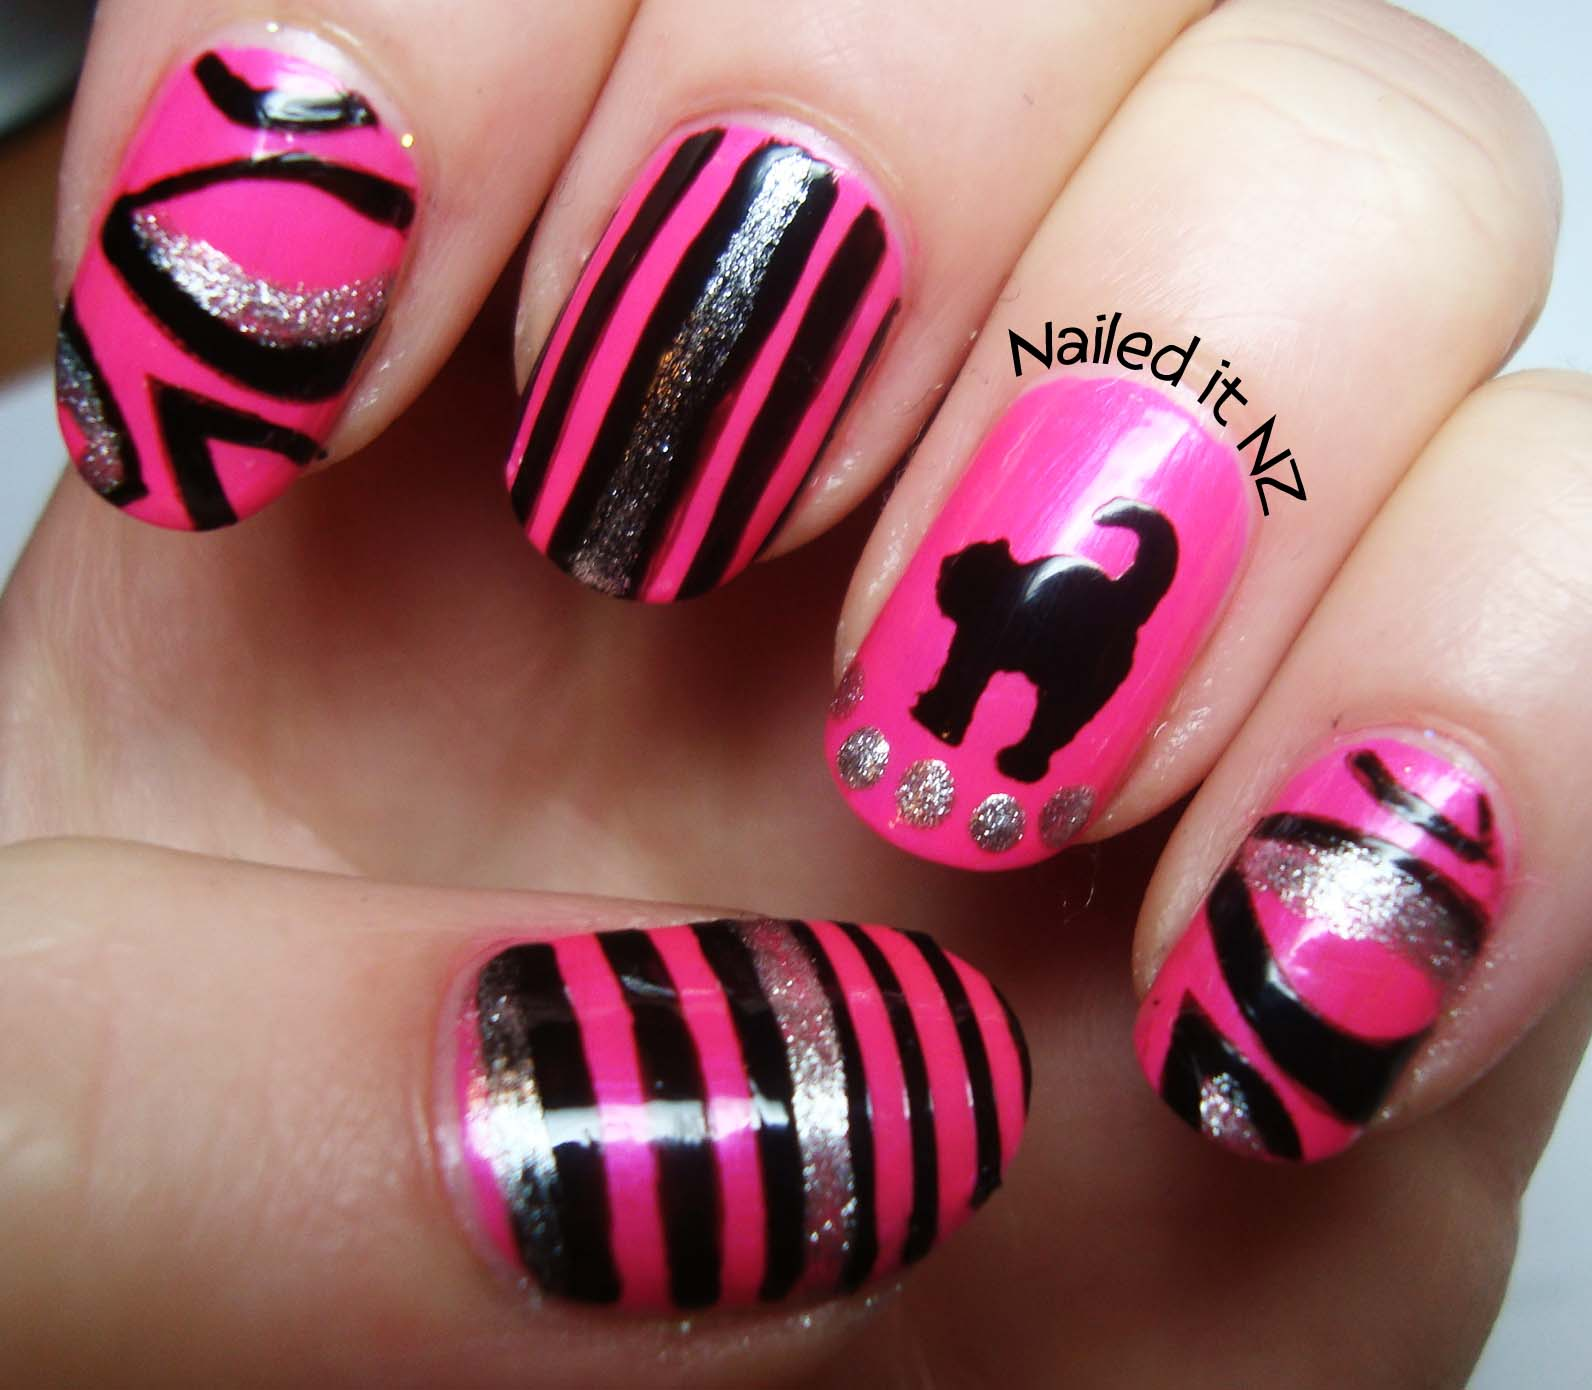 cat-hot-pink-nail-art-nail-design-Favim.com-606696.jpg